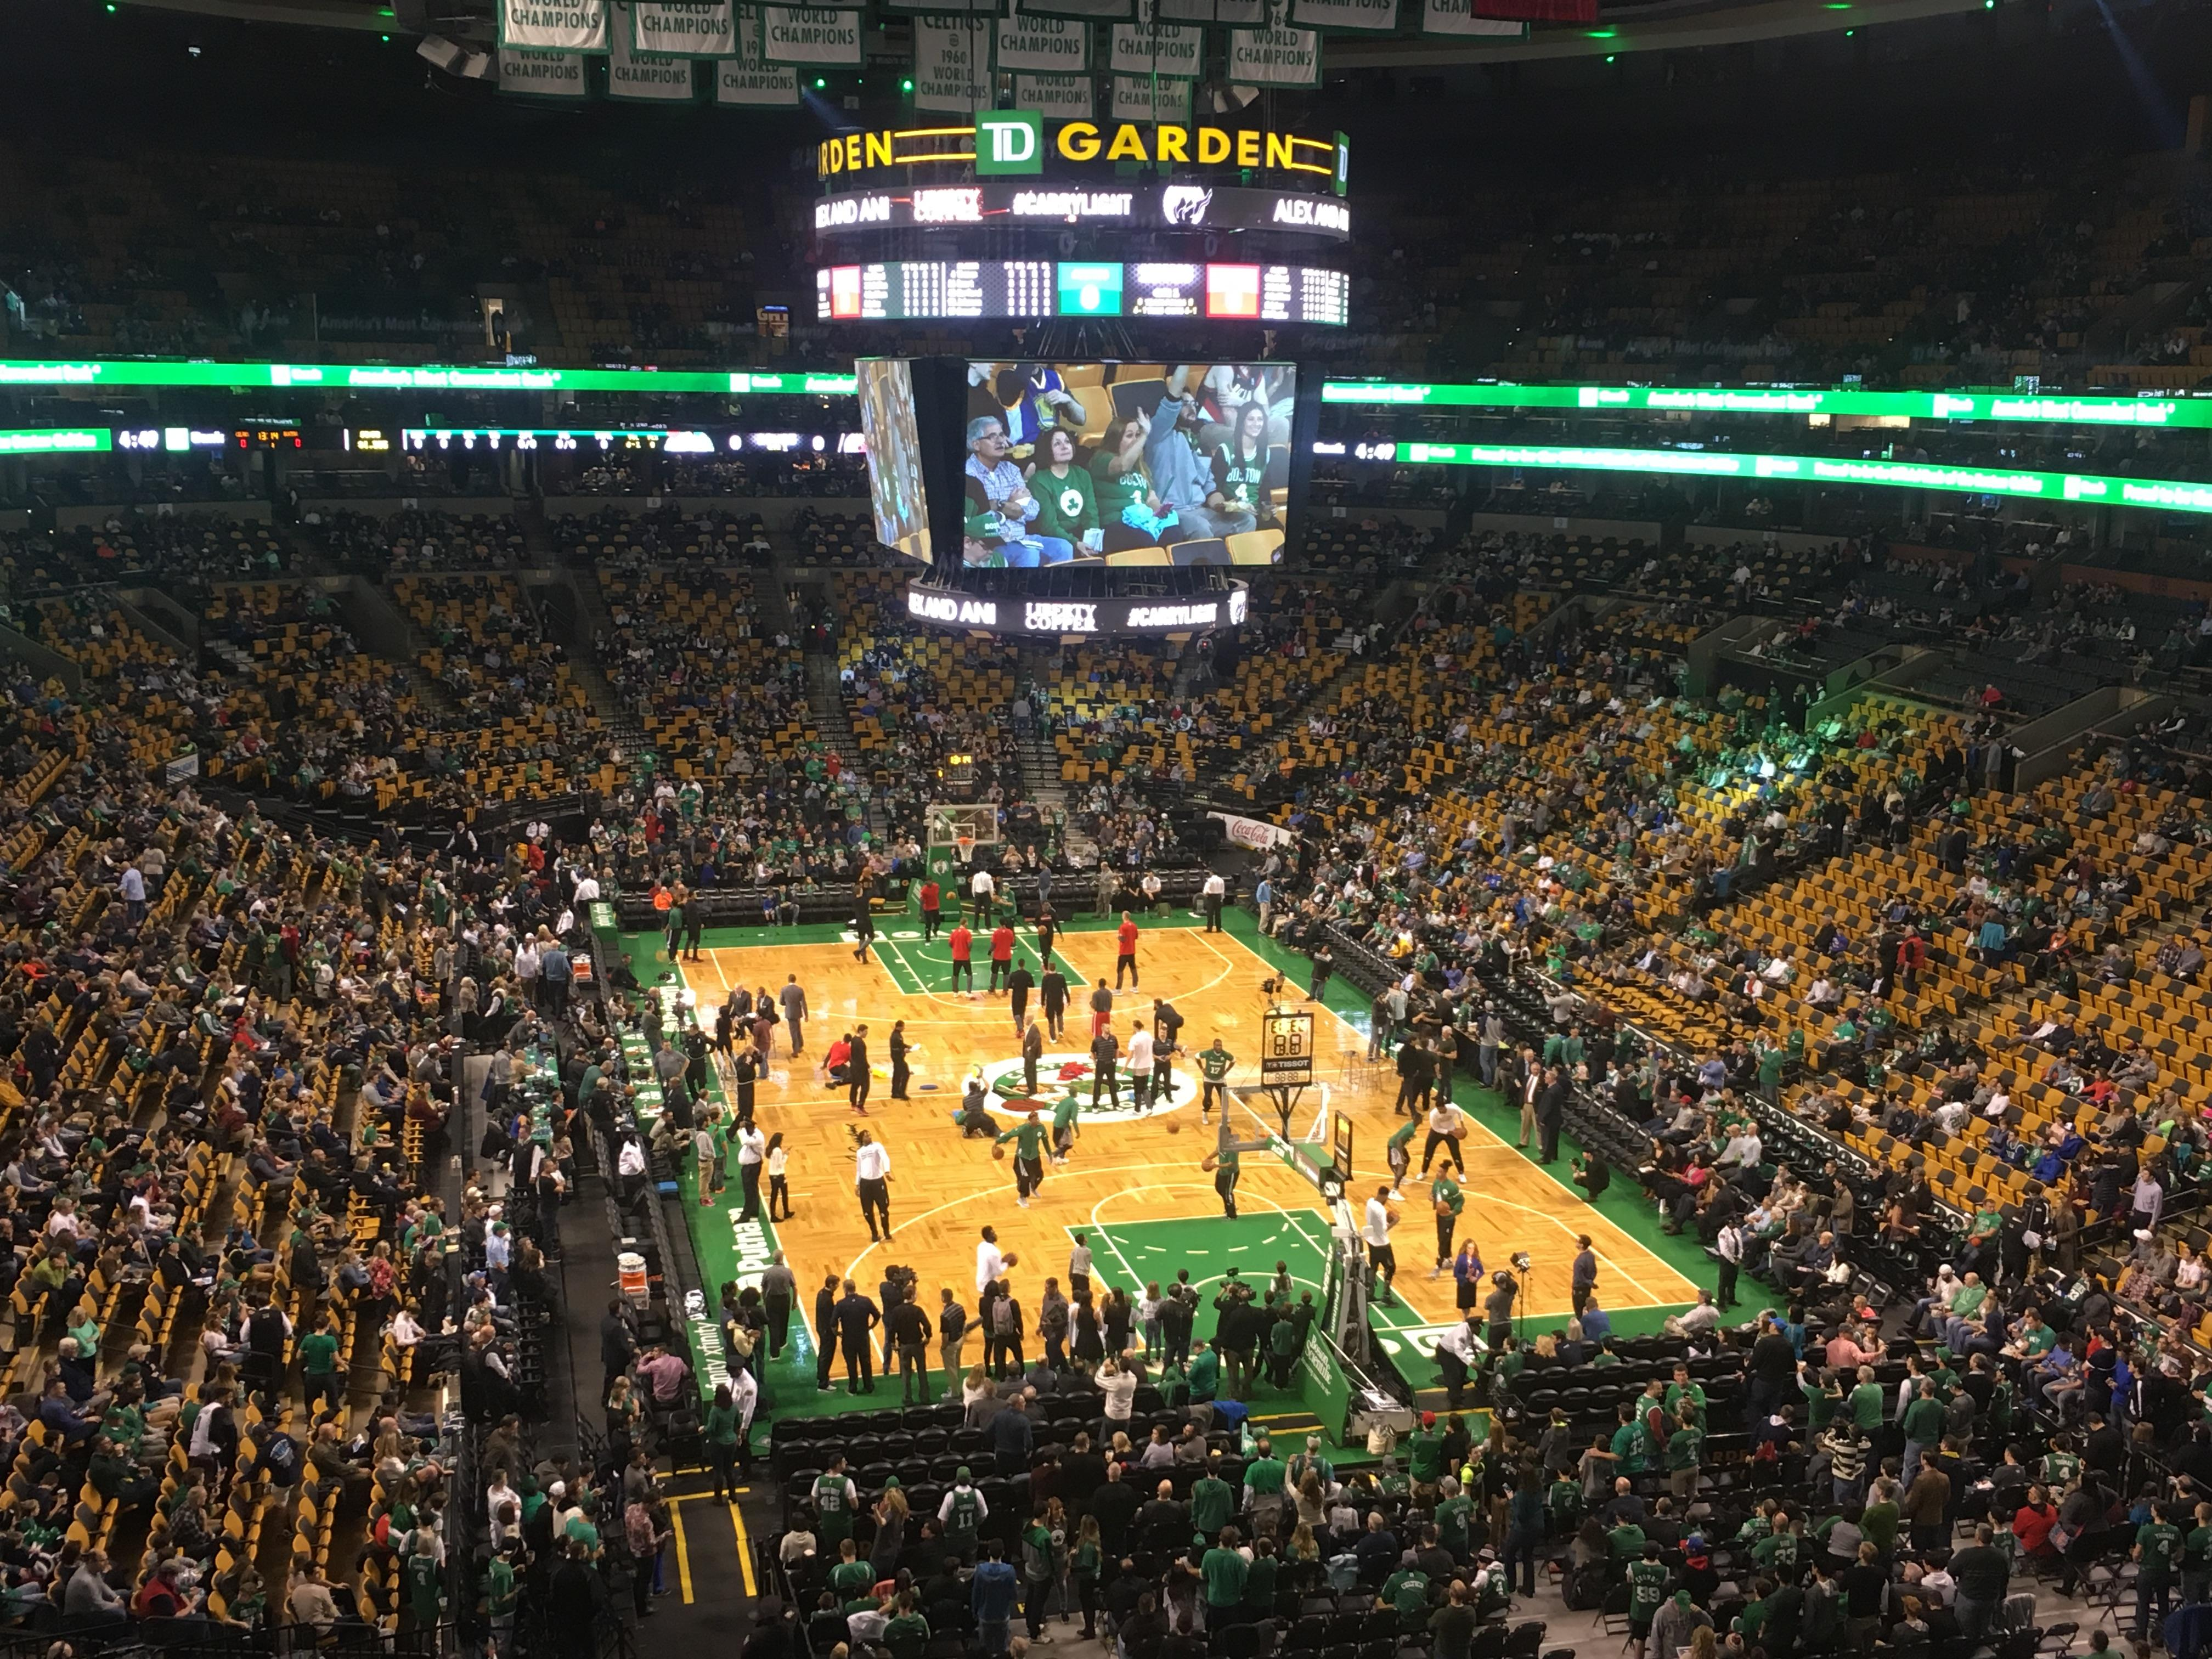 TD Garden Section Bal 325 Row 1 Seat 4